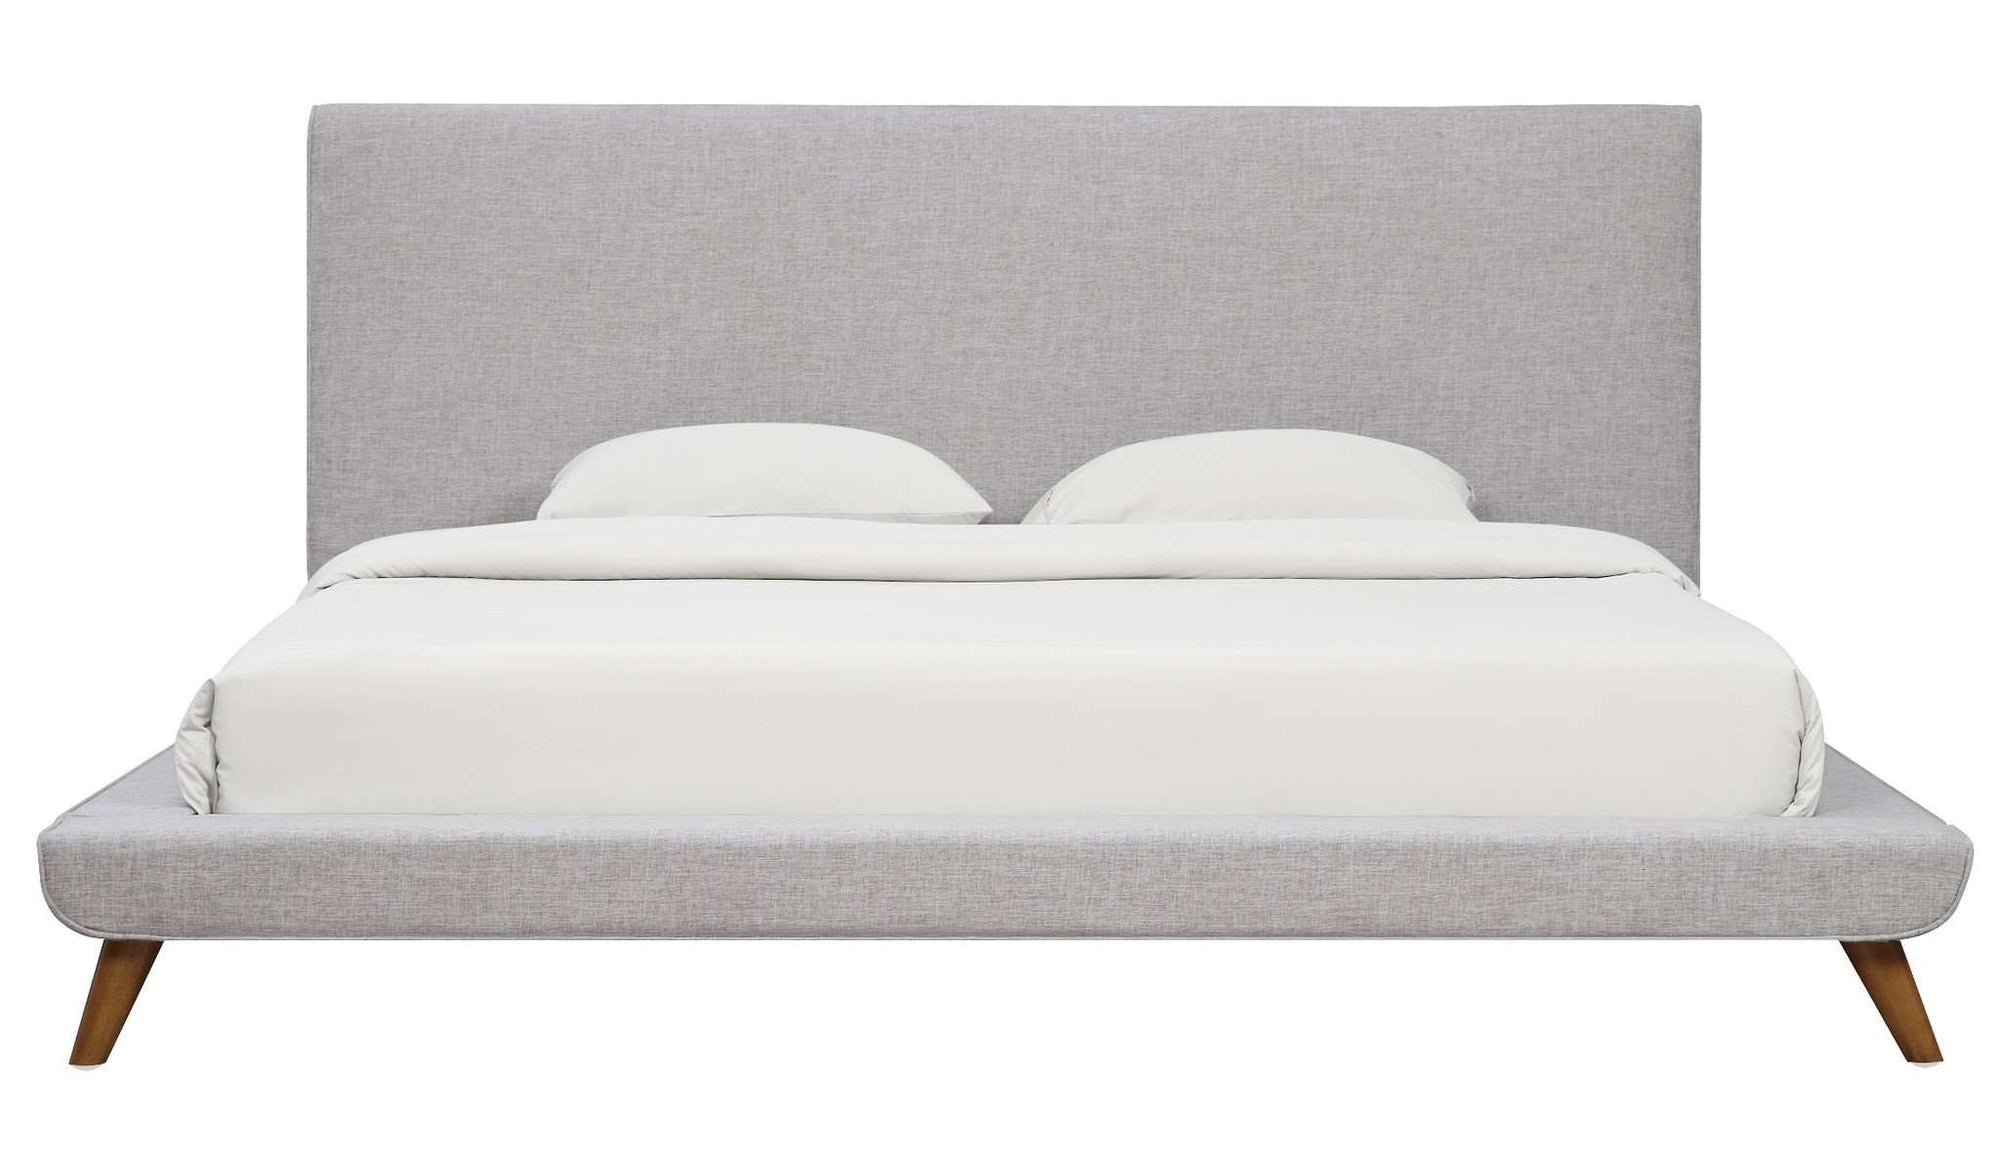 Tov-Nixon Linen Bed in King-Bed-MODTEMPO